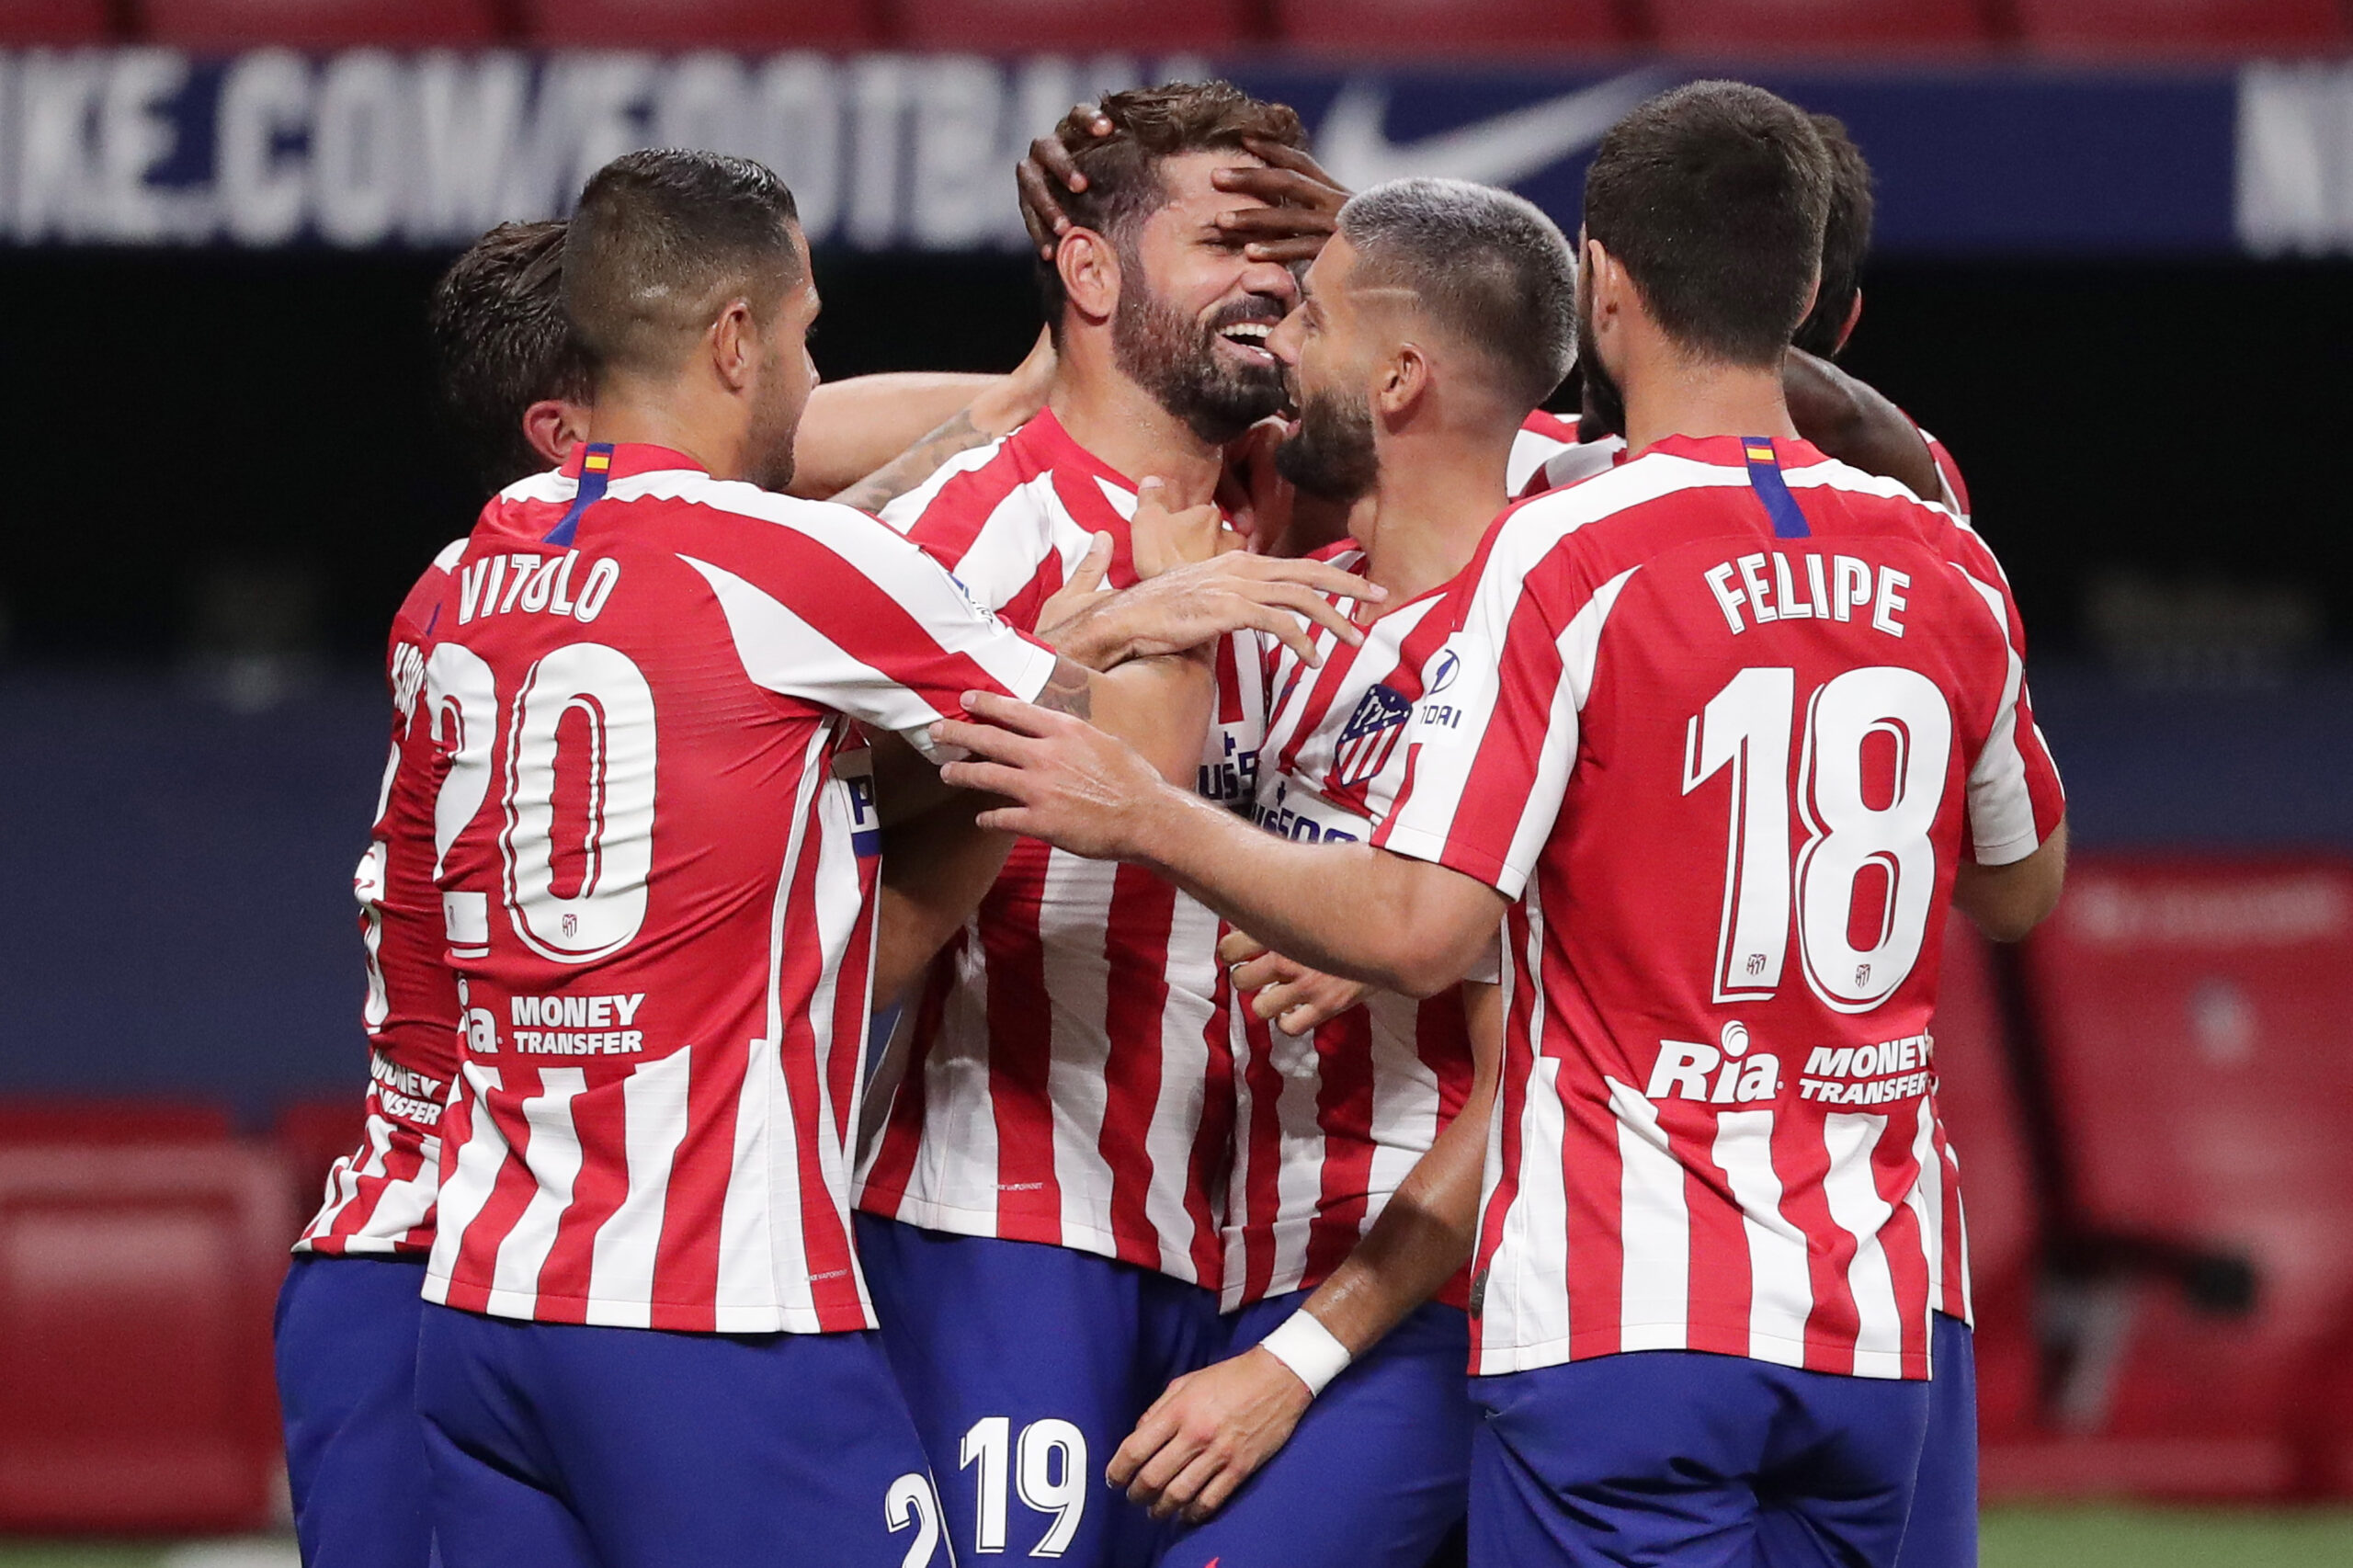 VIDEO: El gol de Diego Costa narrado por Movistar La Liga